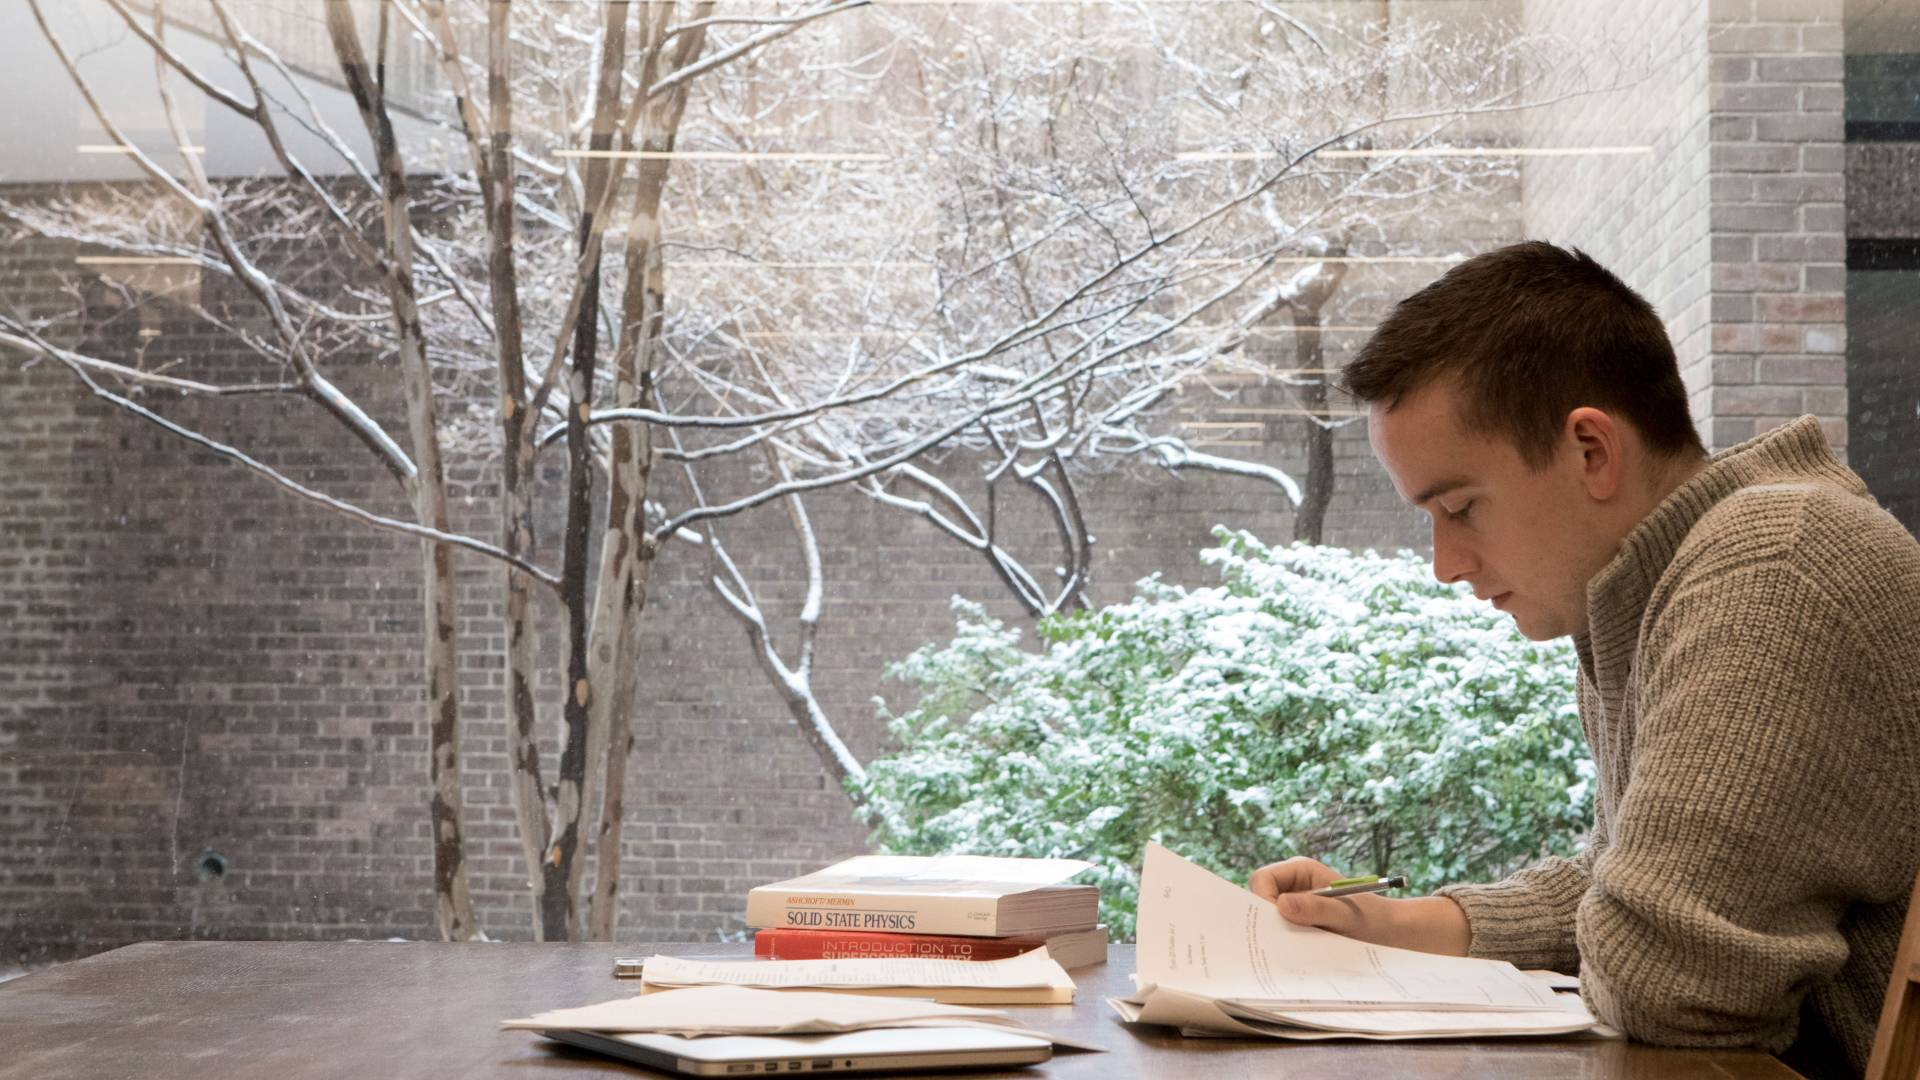 Student studying against window showing snow outside